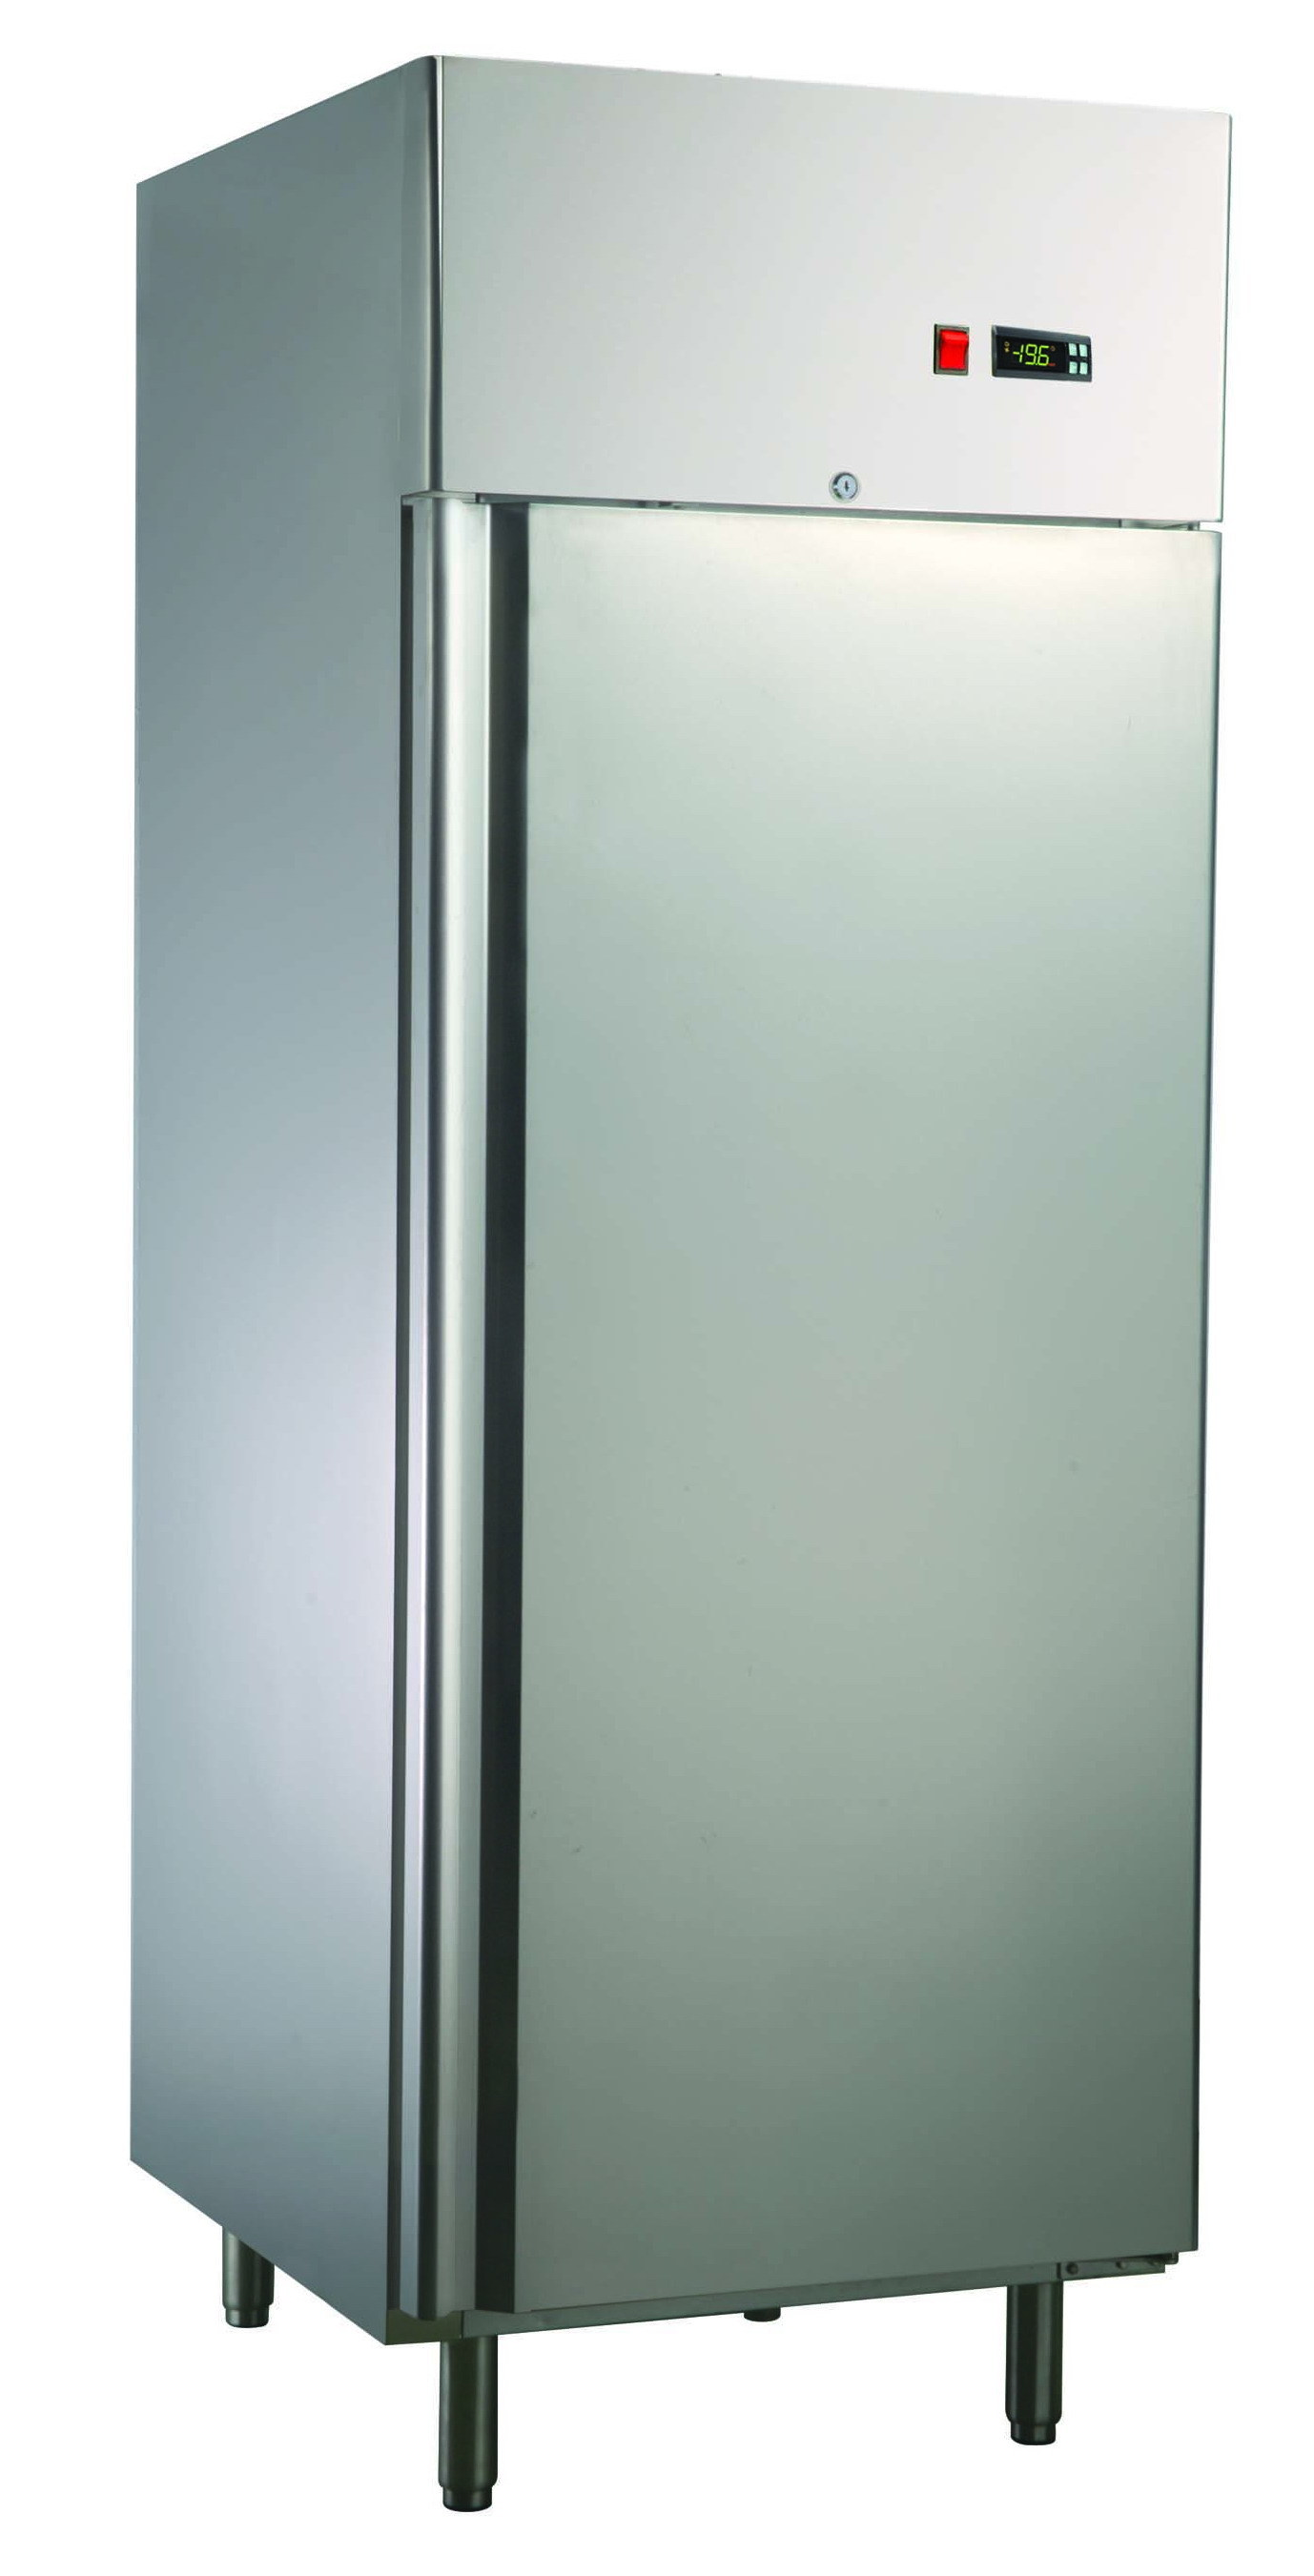 CE Approved High Quality Gn Upright Fridge (GN650C1)